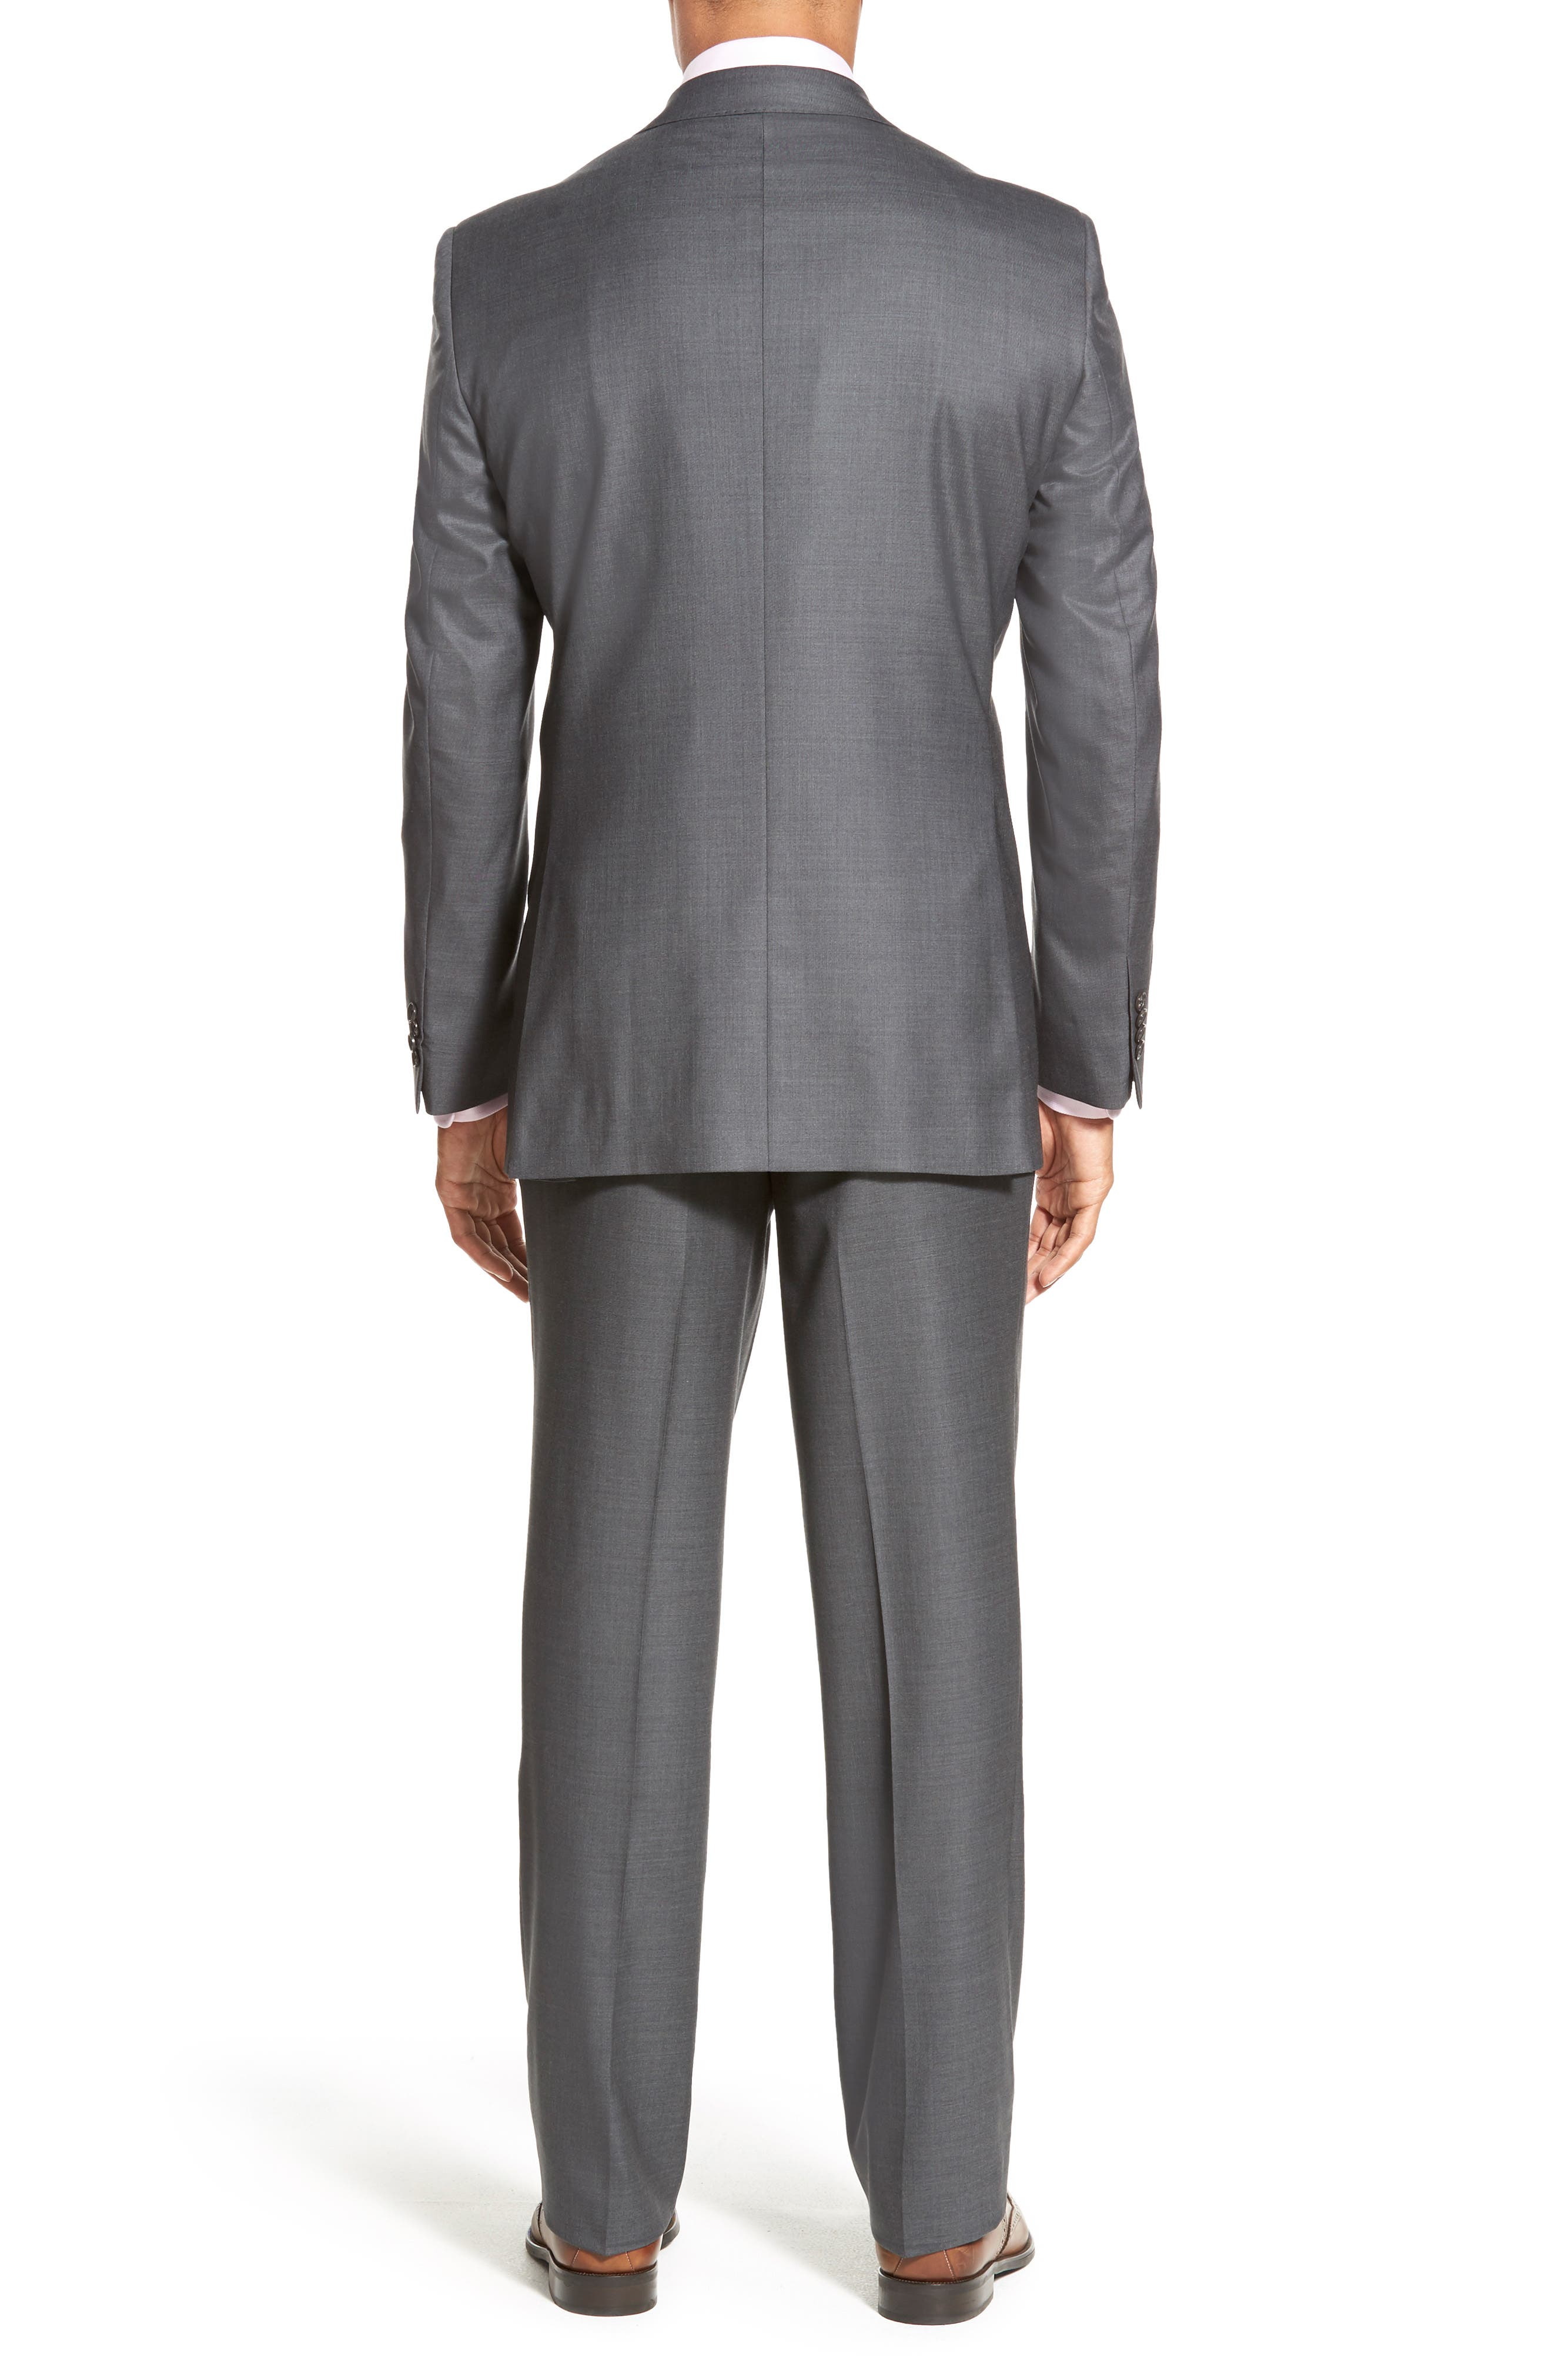 DAVID DONAHUE, Ryan Classic Fit Solid Wool Suit, Alternate thumbnail 2, color, GREY